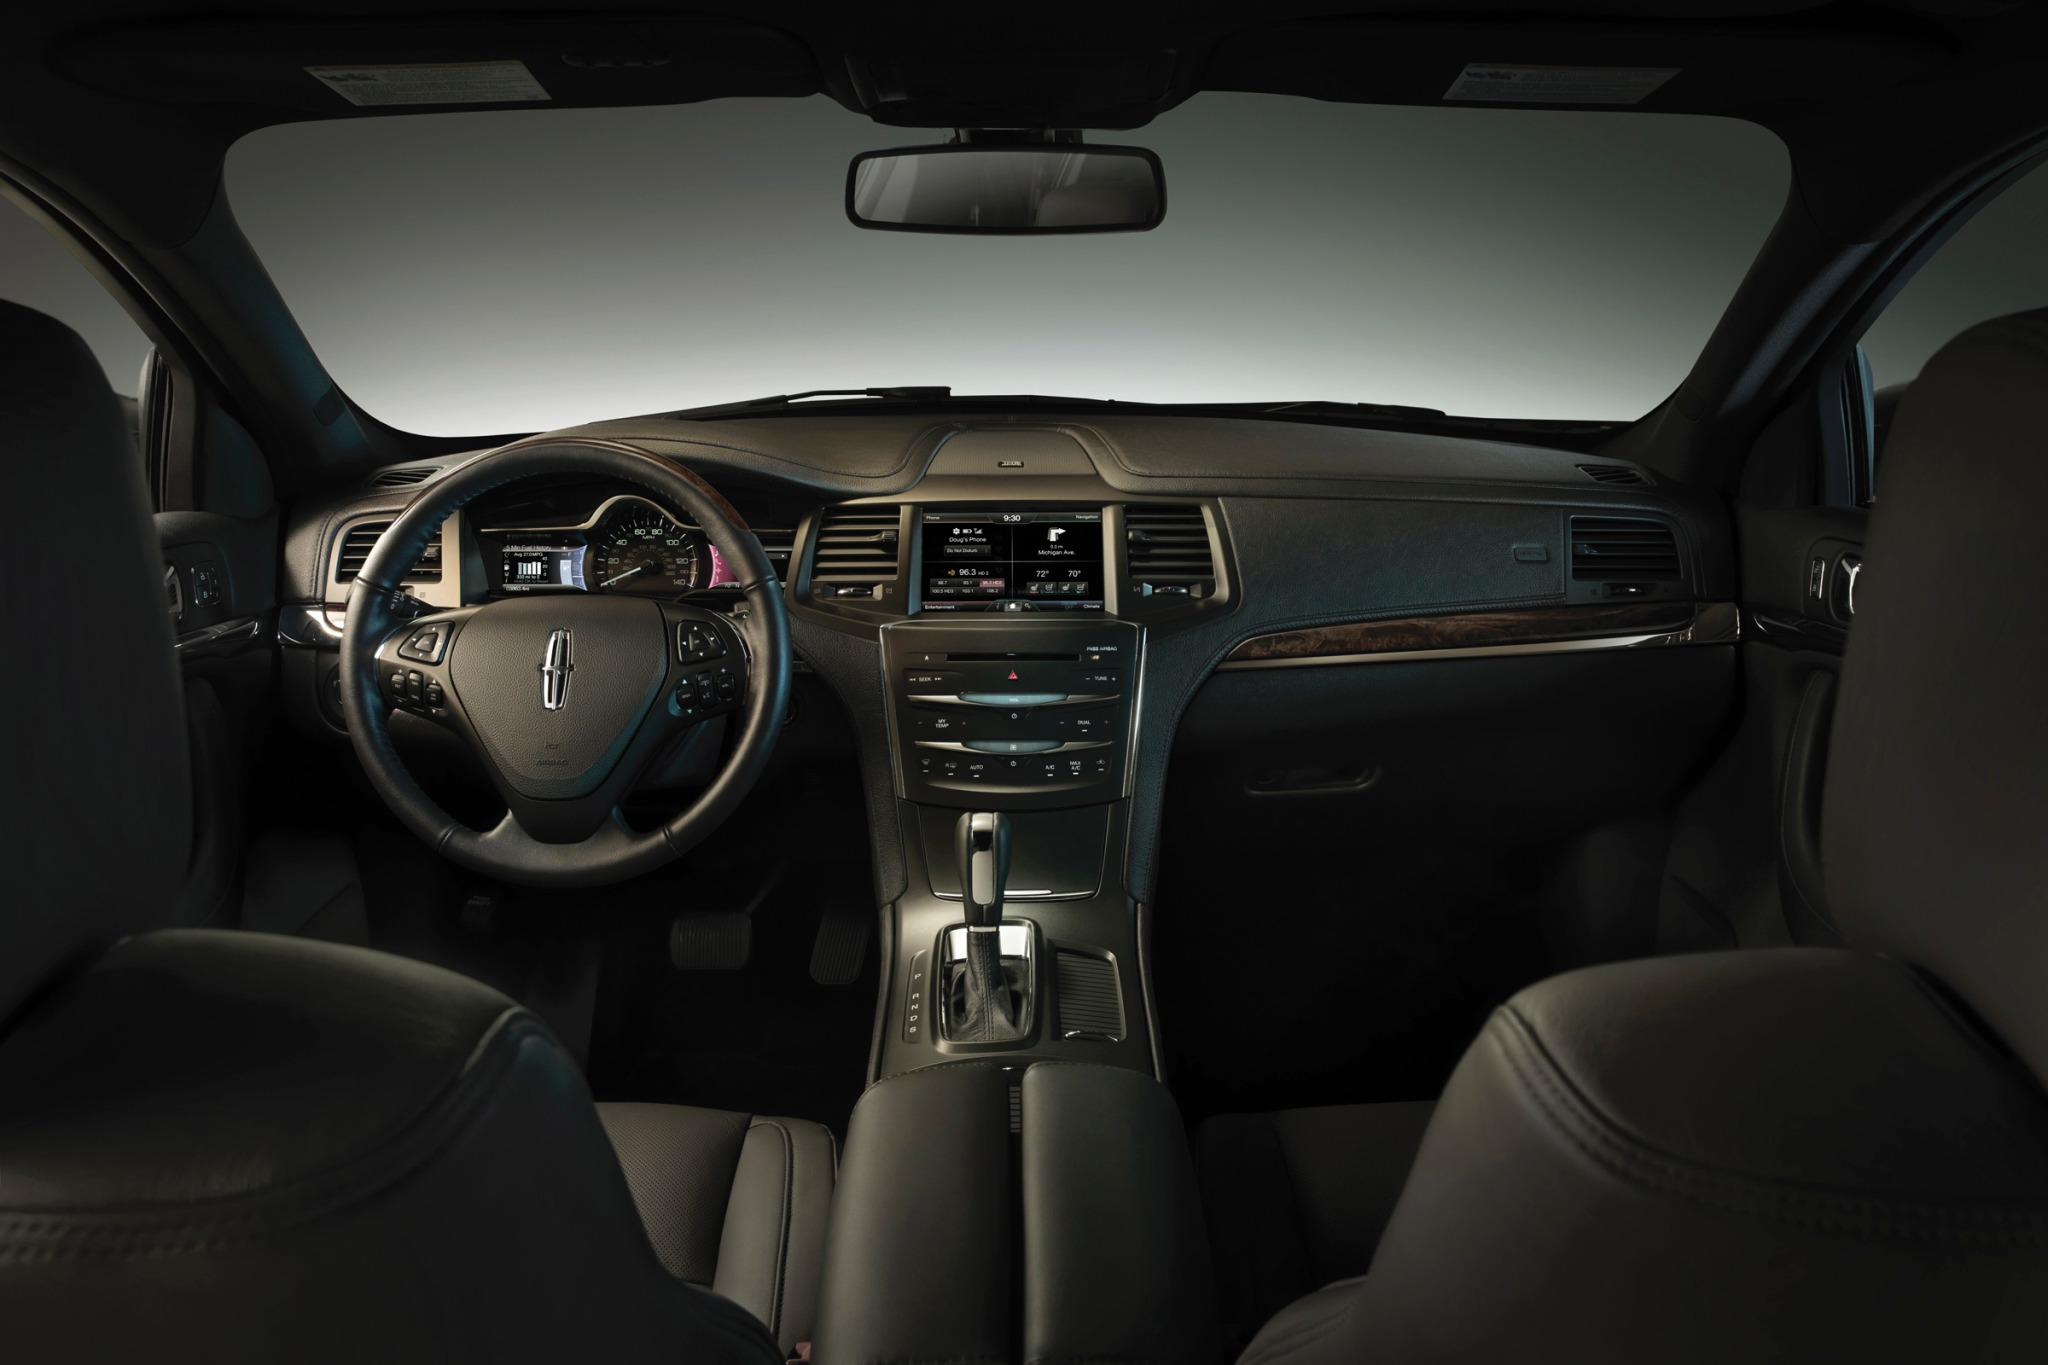 fwd mkx sedan cars mks reviews motor rating lincoln and trend front angular